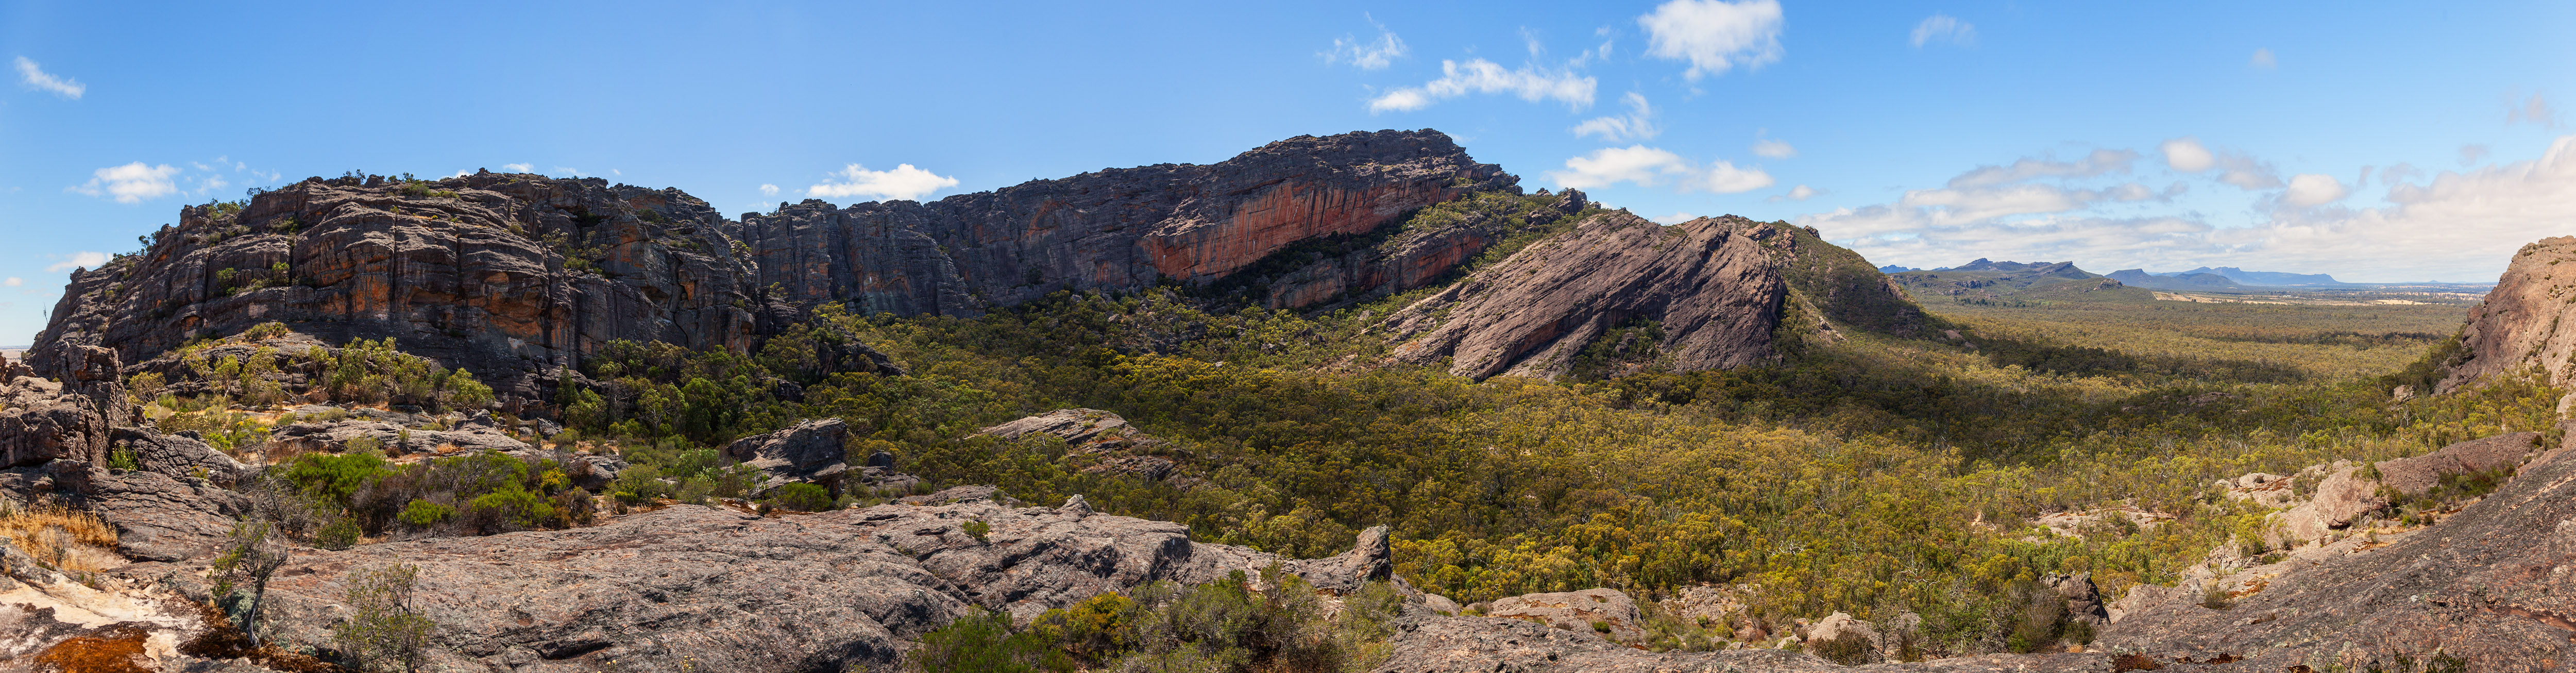 Panoramic landscape view of the Grampians, Victoria